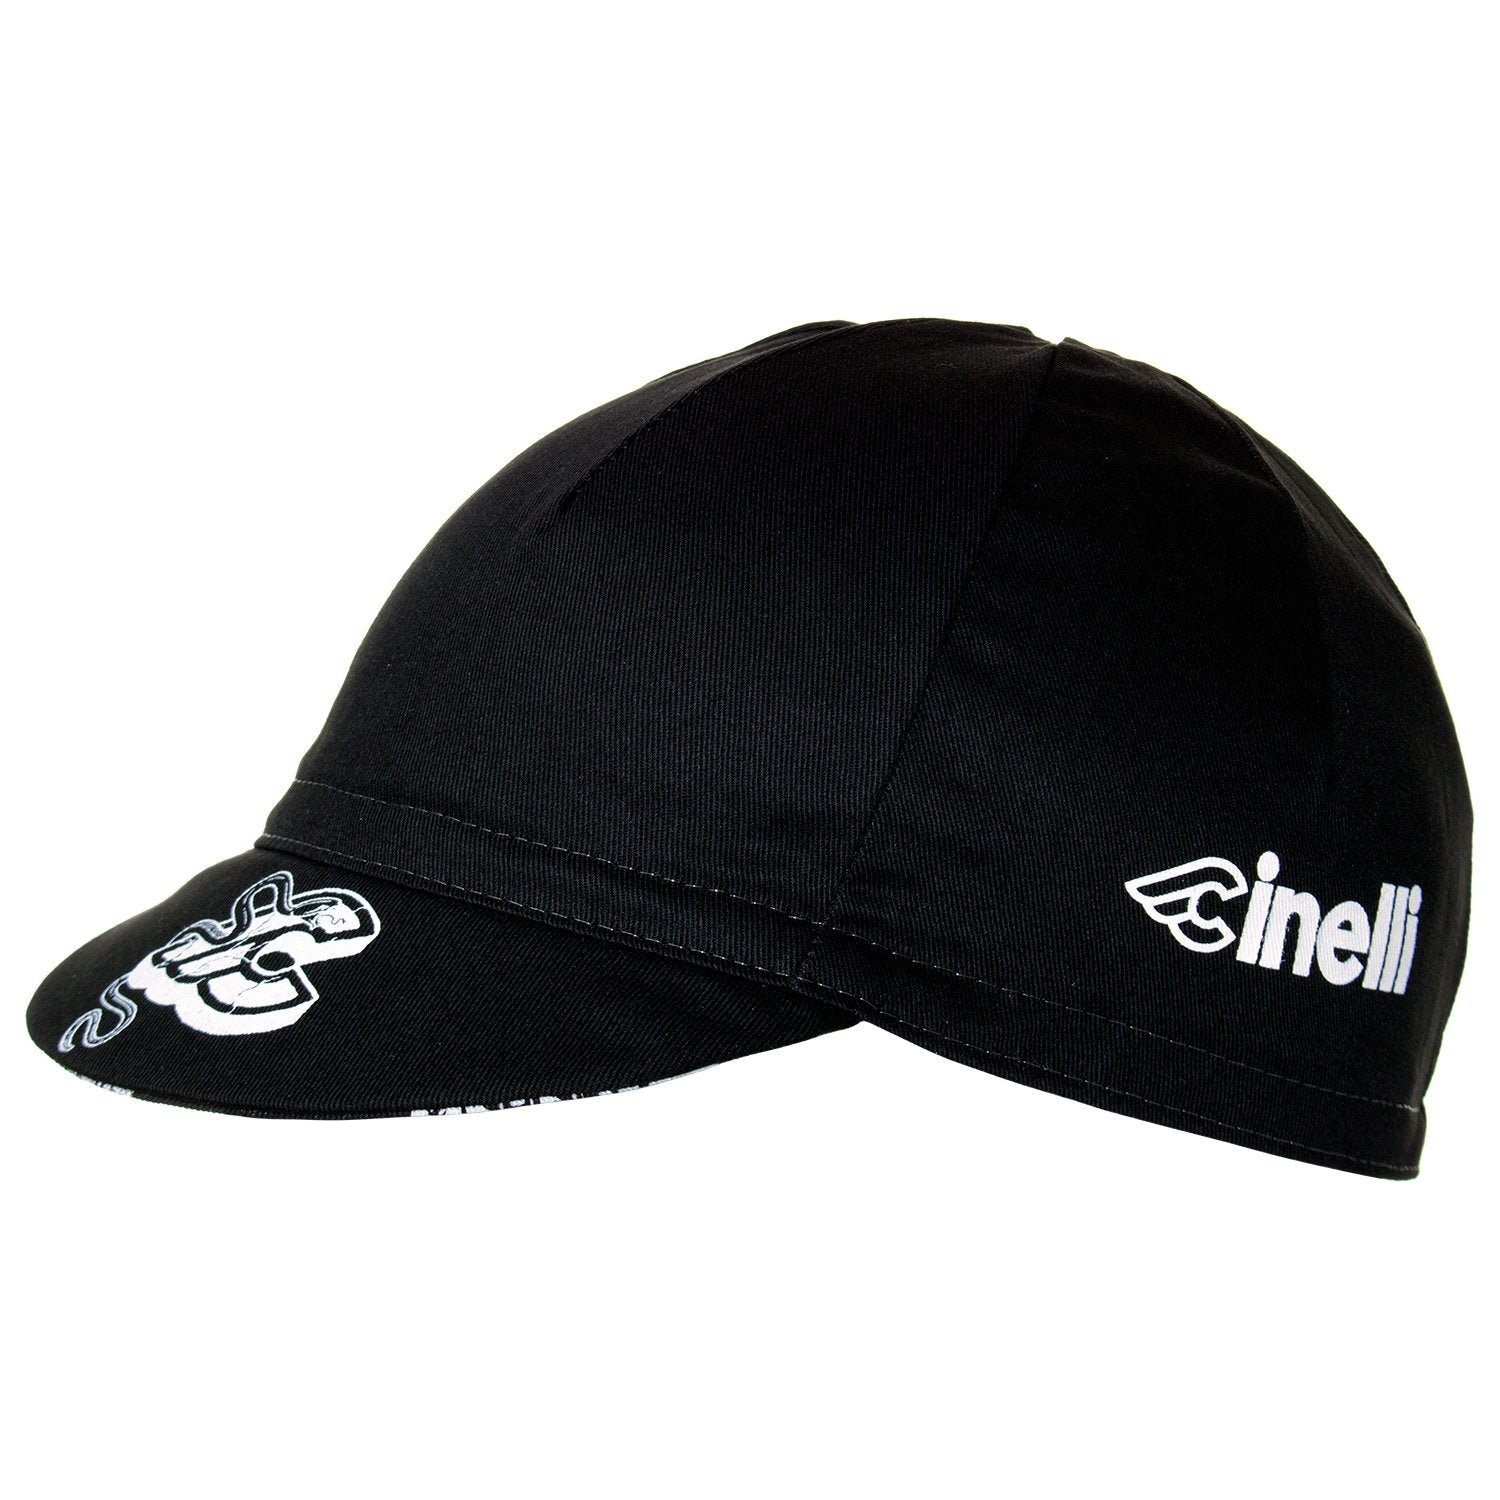 Cinelli Mike Giant Black Cotton Cycling Cap